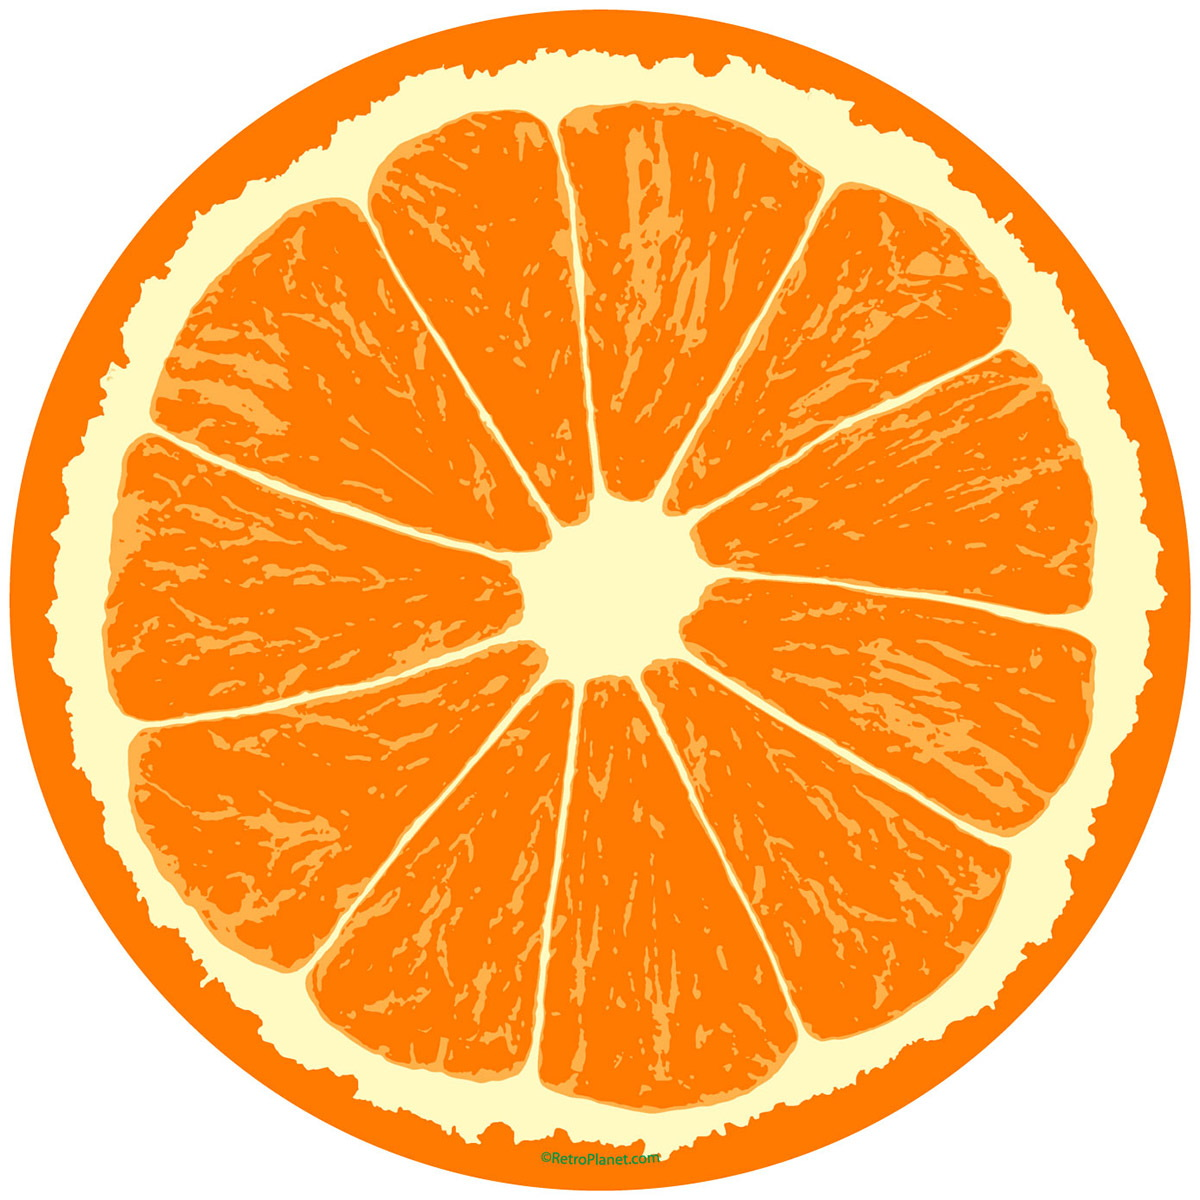 1200x1200 Orange Fruit Slice Citrus Kitchen Wall Decal Removable Wall